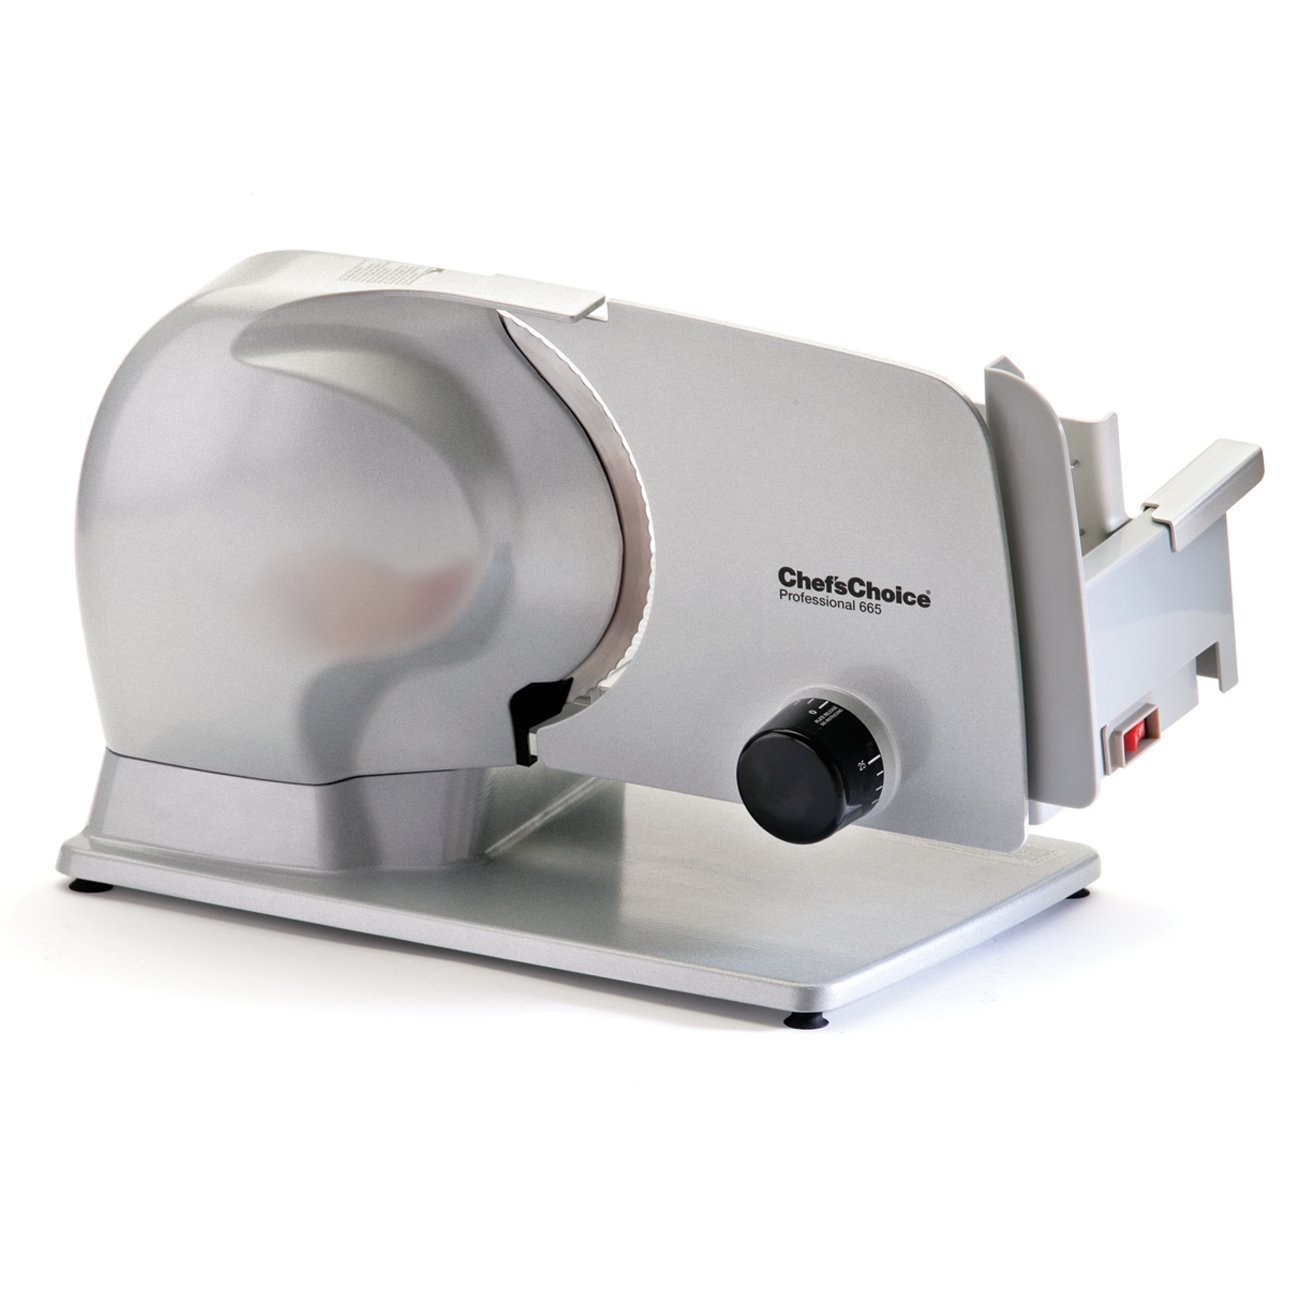 Chef'sChoice 665 Professional Electric Food Slicer, Gray Chef's Choice 6650000